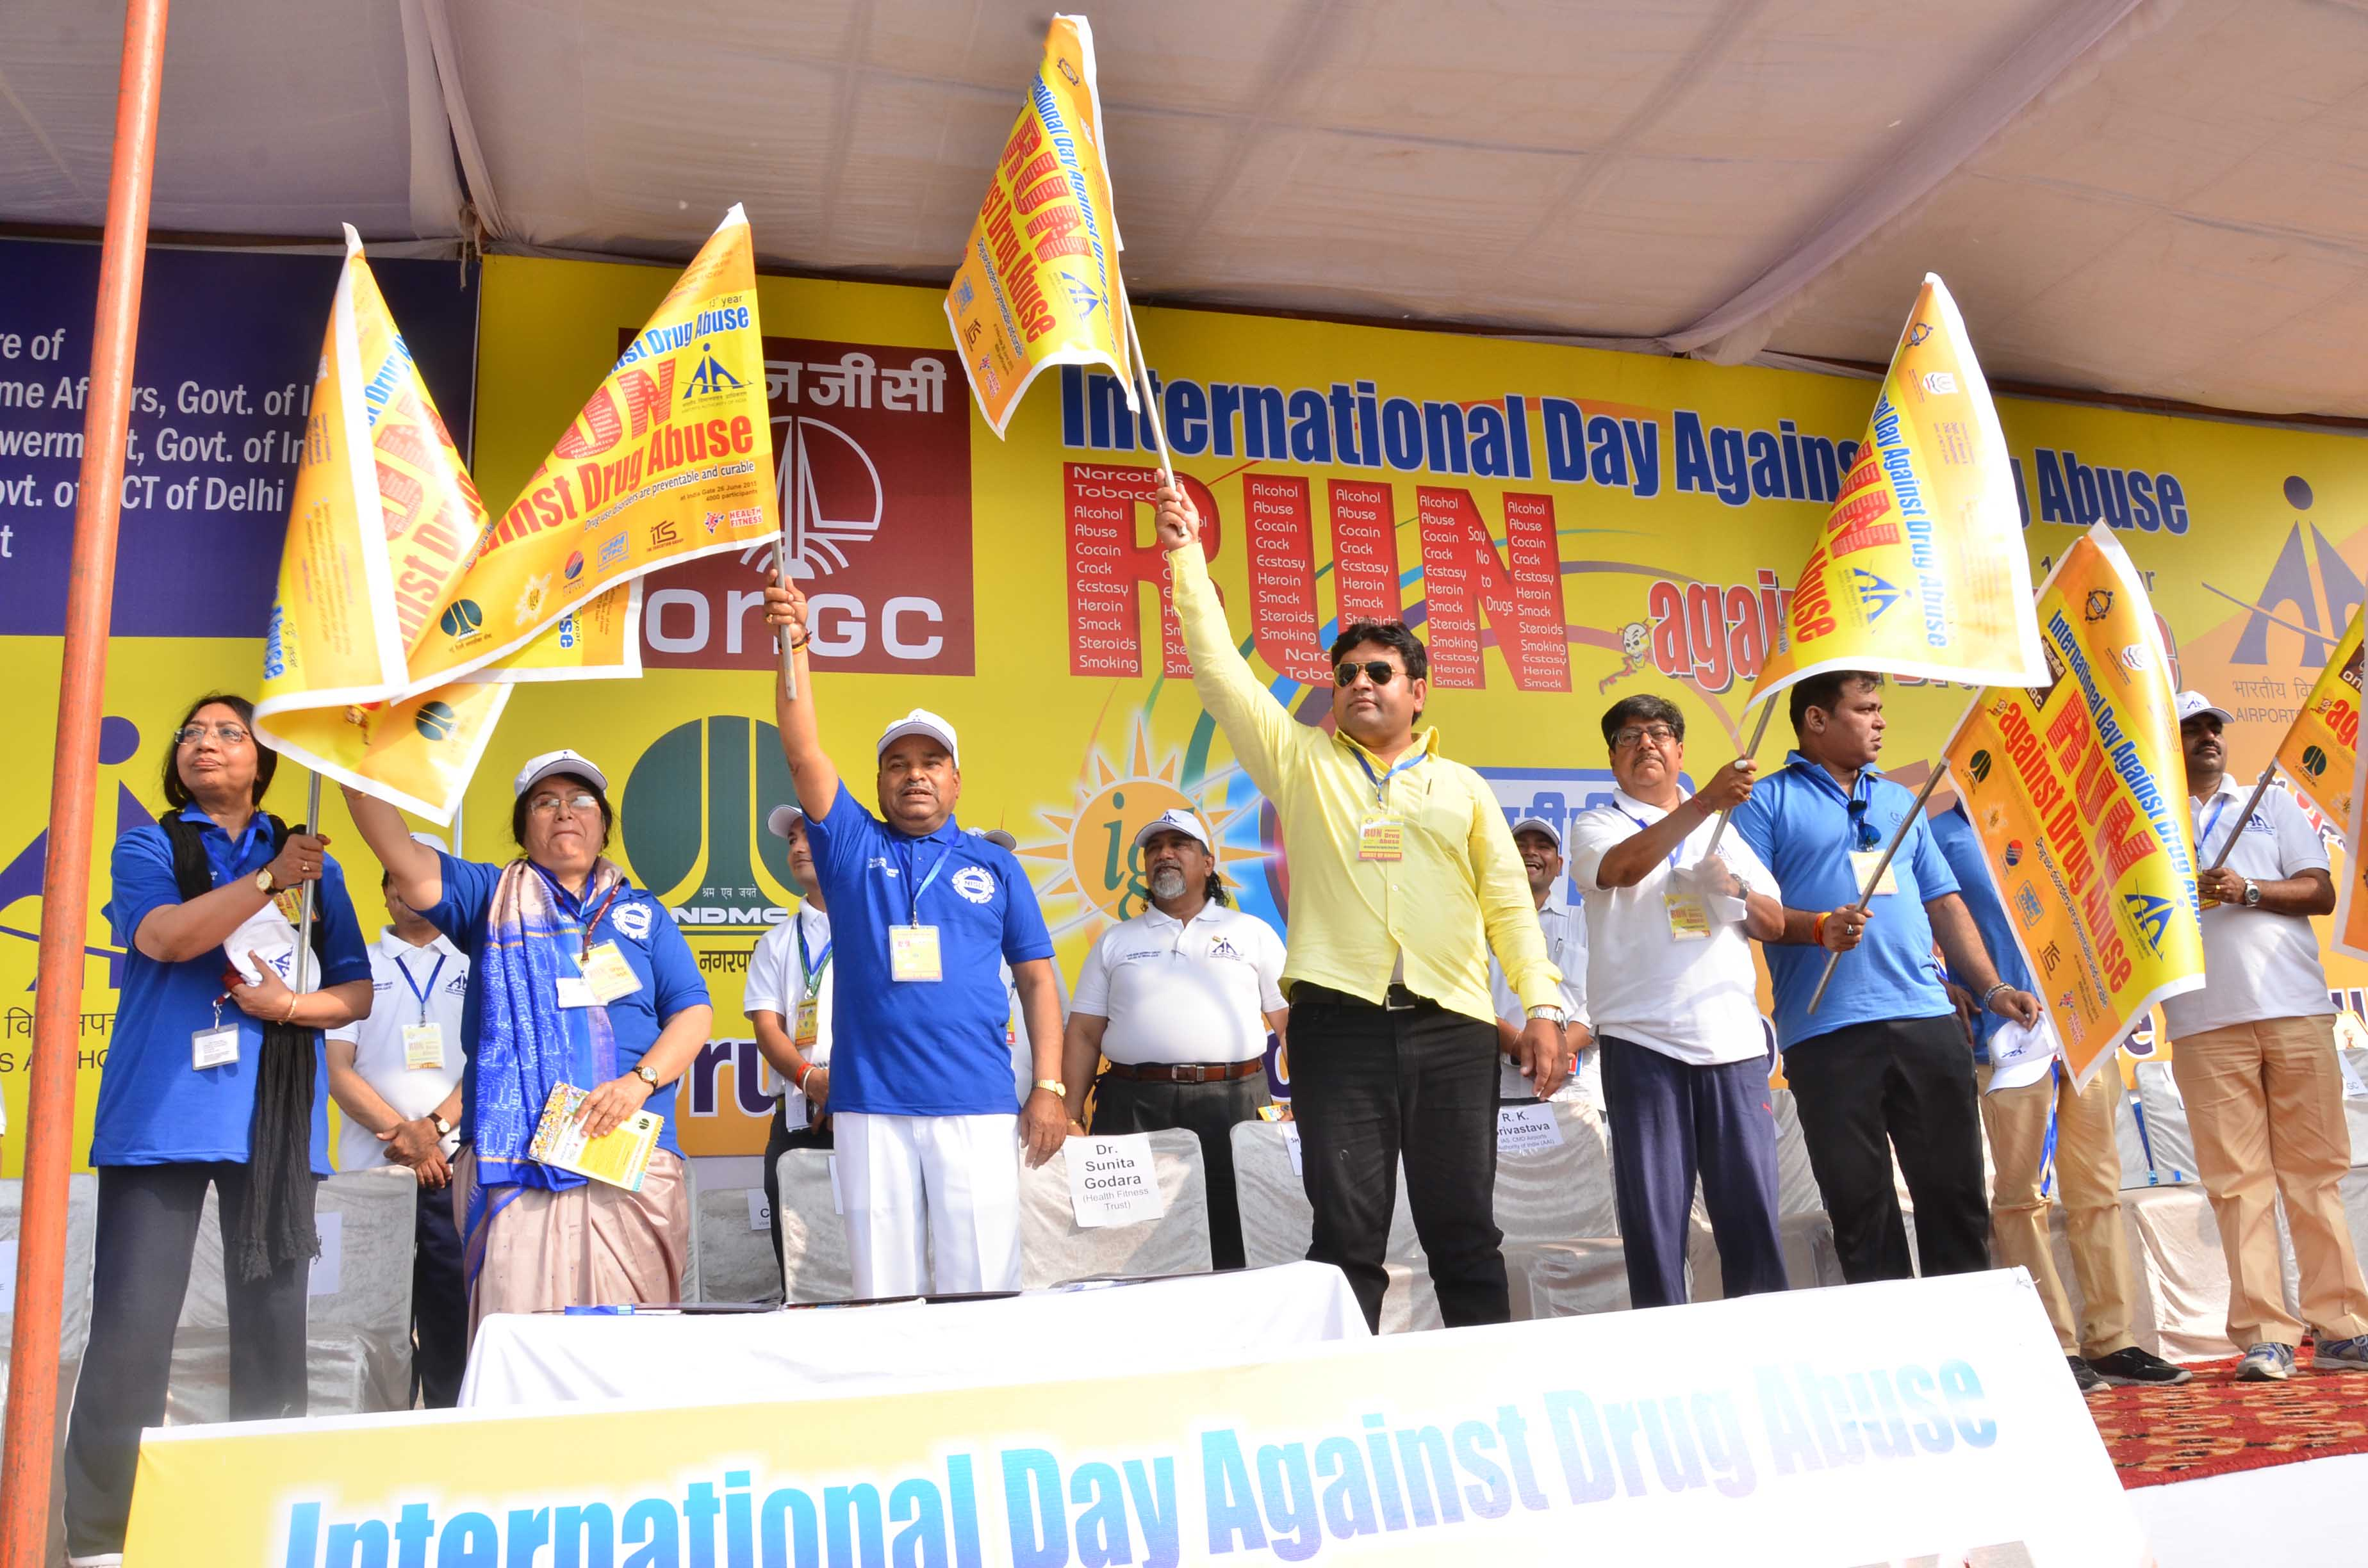 THAAWAR CHAND GEHLOT FLAGS OFF RUN ON THE INTERNATIONAL DAY AGAINST DRUG ABUSE